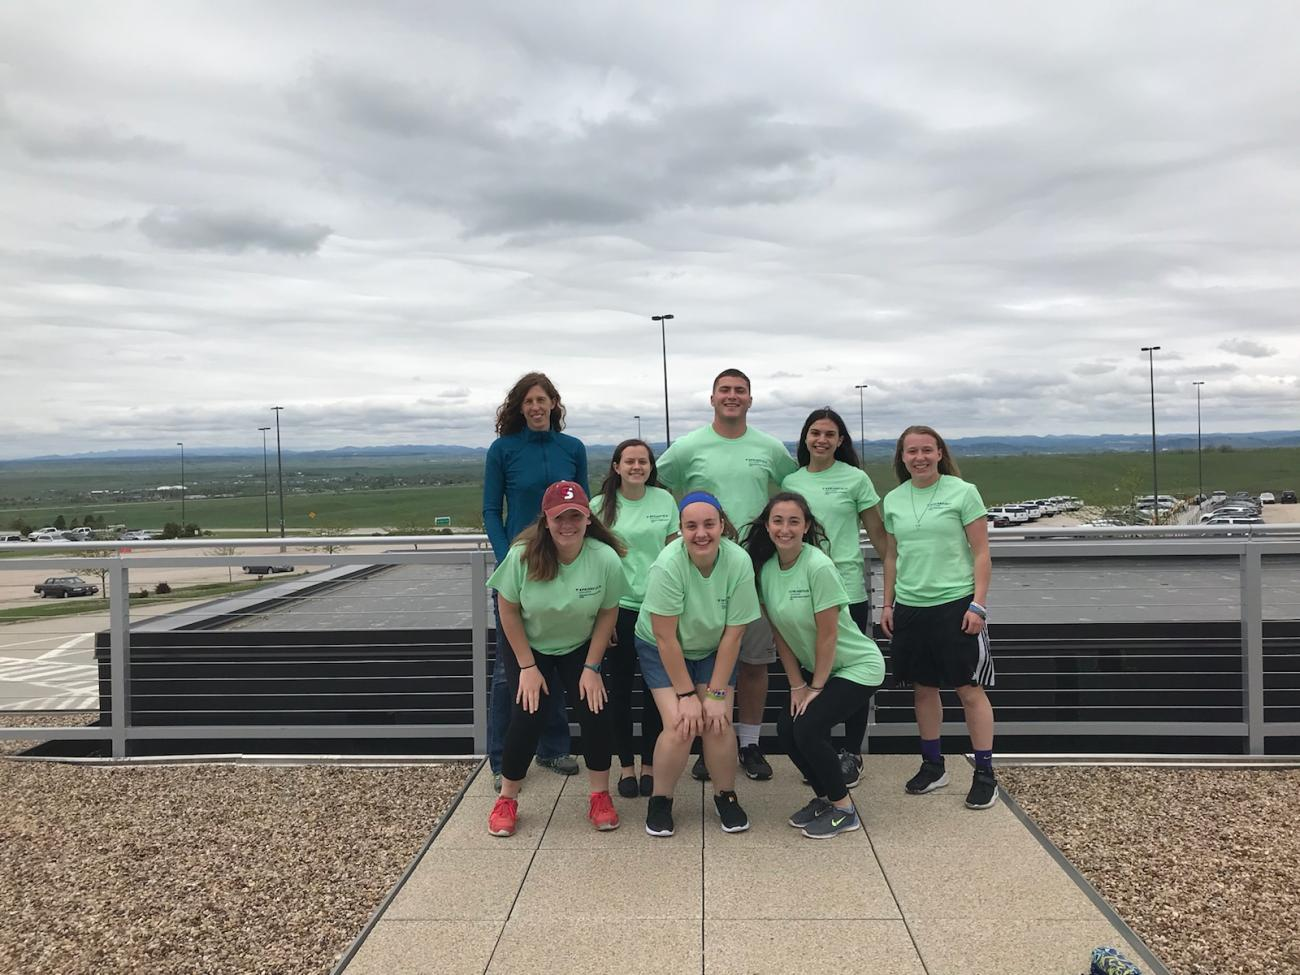 Led by Springfield College Assistant Professor of Biology Melinda Fowler, seven undergraduate students will be learning about Native American culture on the Cheyenne Reservation in South Dakota over the next week as part of the Springfield College alternative summer break trip, similar to the alternative spring break trips that took place back in March.